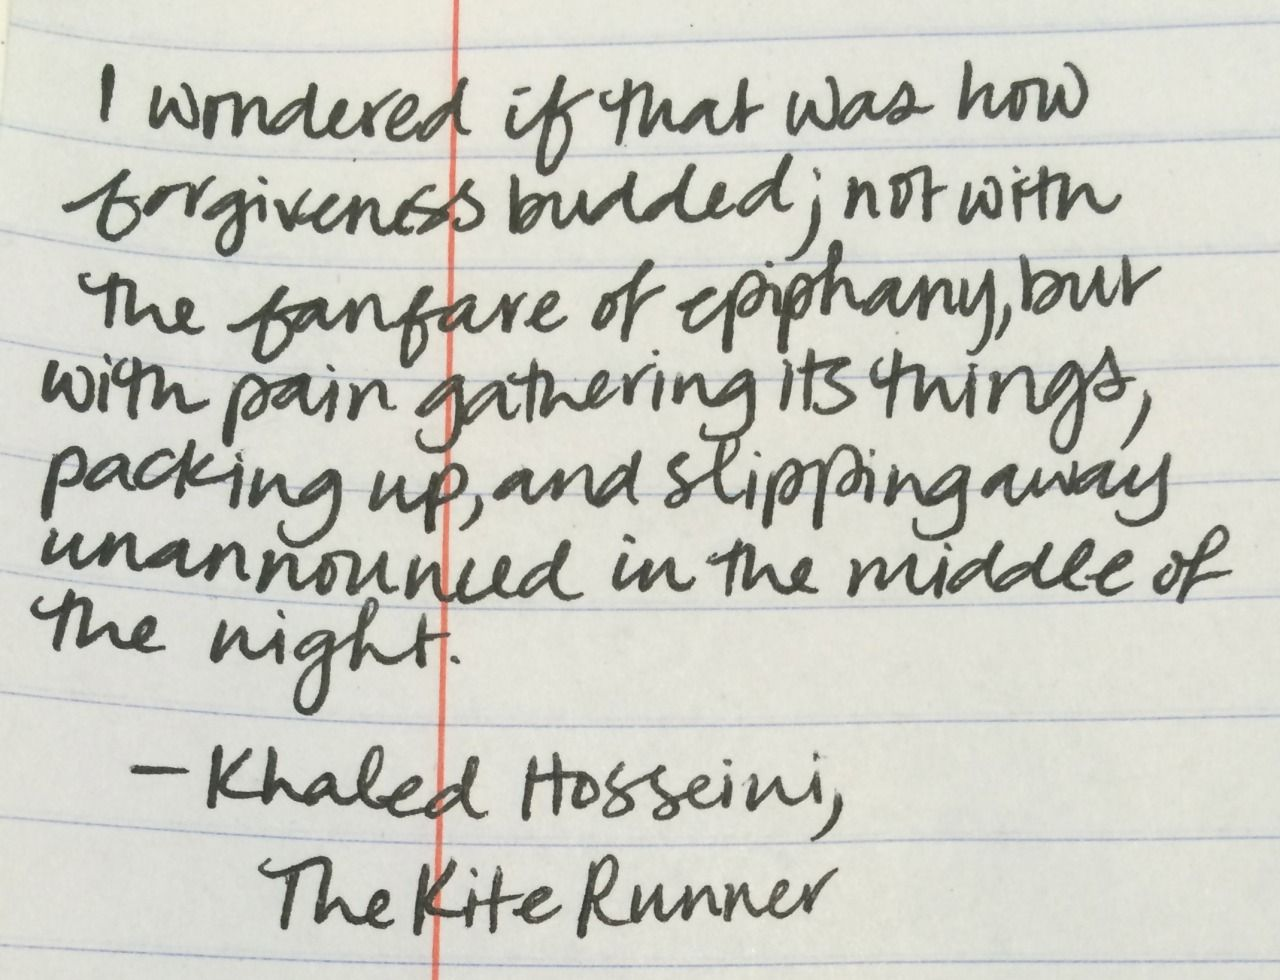 001 the kite runner Runner quotes, Quotes, Inspirational quotes